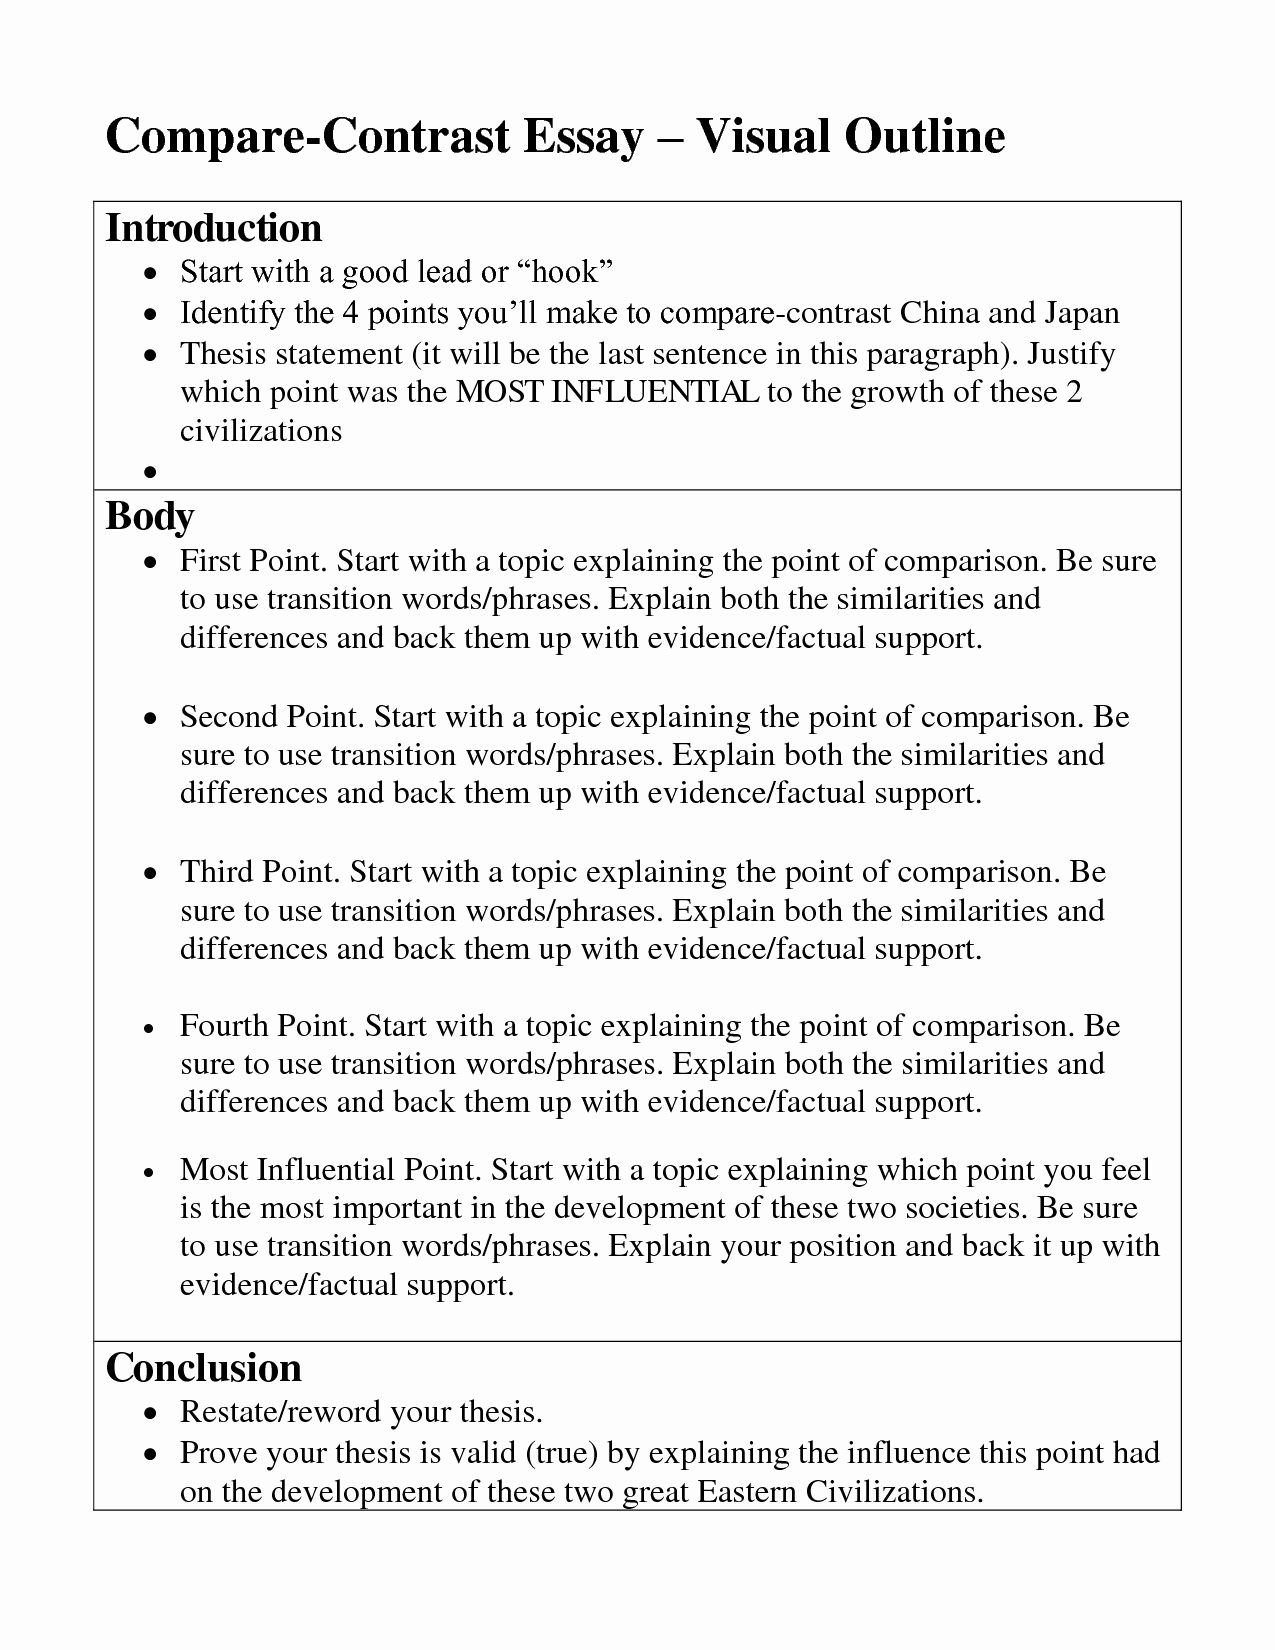 Essay Outline Mla New Pare And Contrast Essay Outline Mla Bamboodownunder Essay Outline Essay Examples Expository Essay